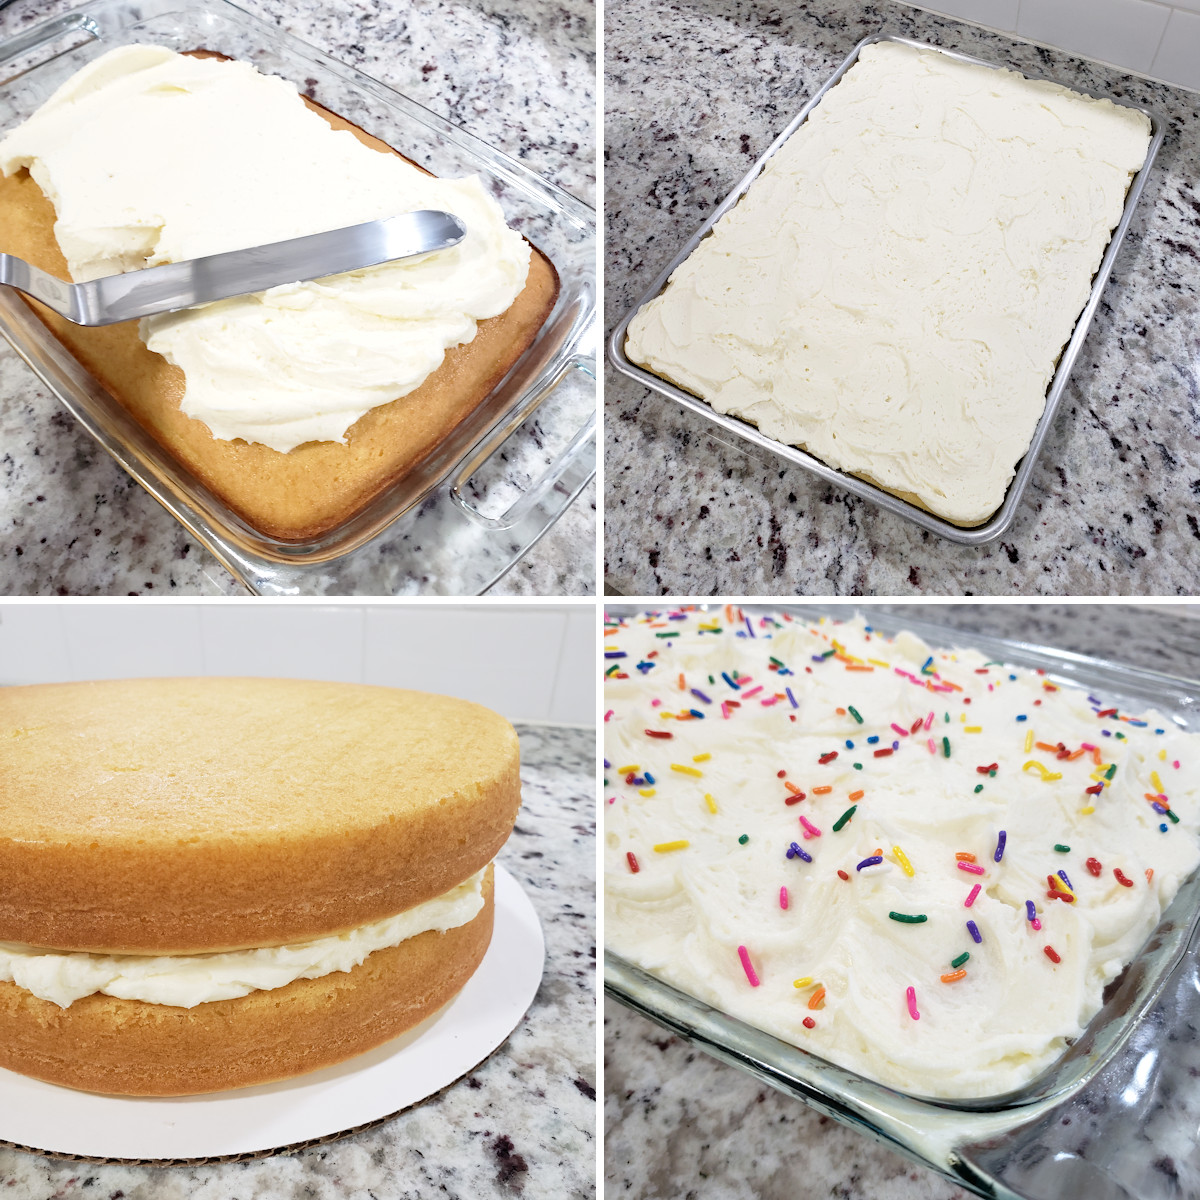 Frosting cakes of various sizes.